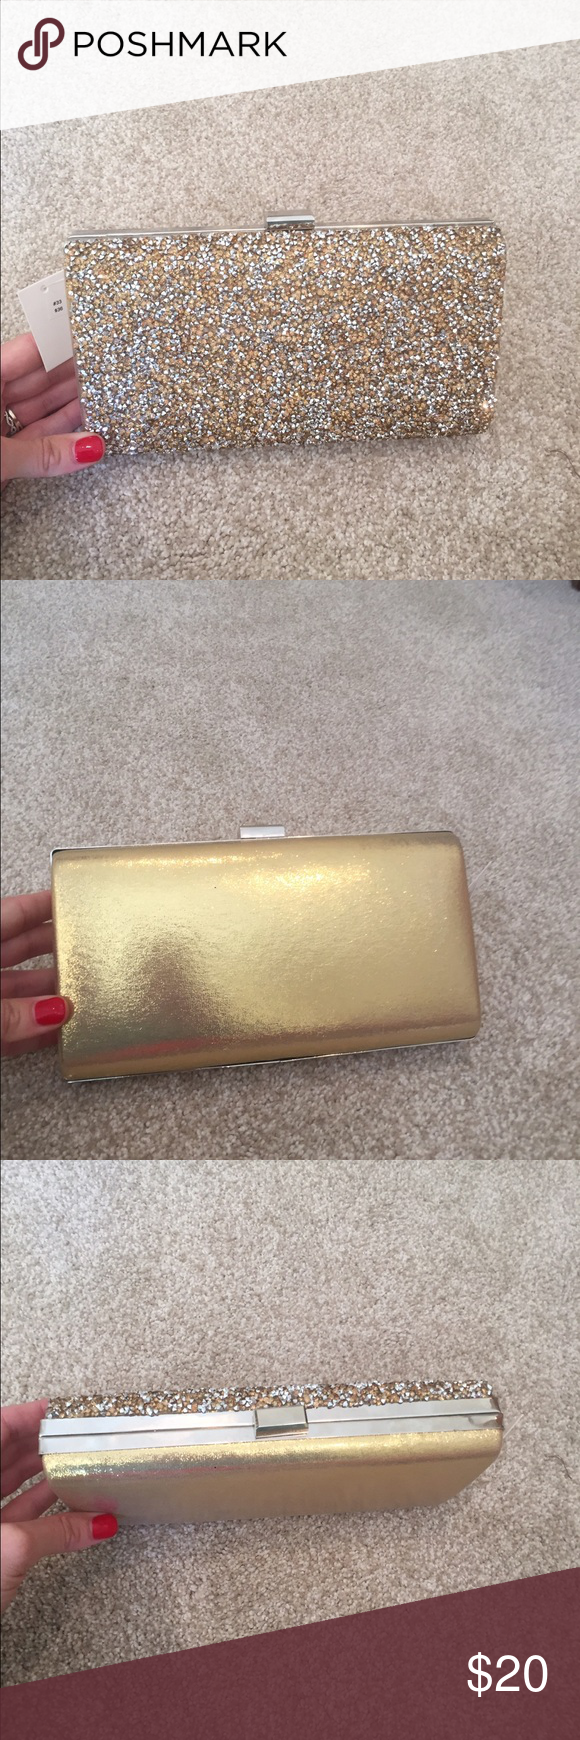 Gold clutch Beautiful gold clutch that has only been used once (at my wedding)! Perfect for a fun night out on the town! Bags Clutches & Wristlets